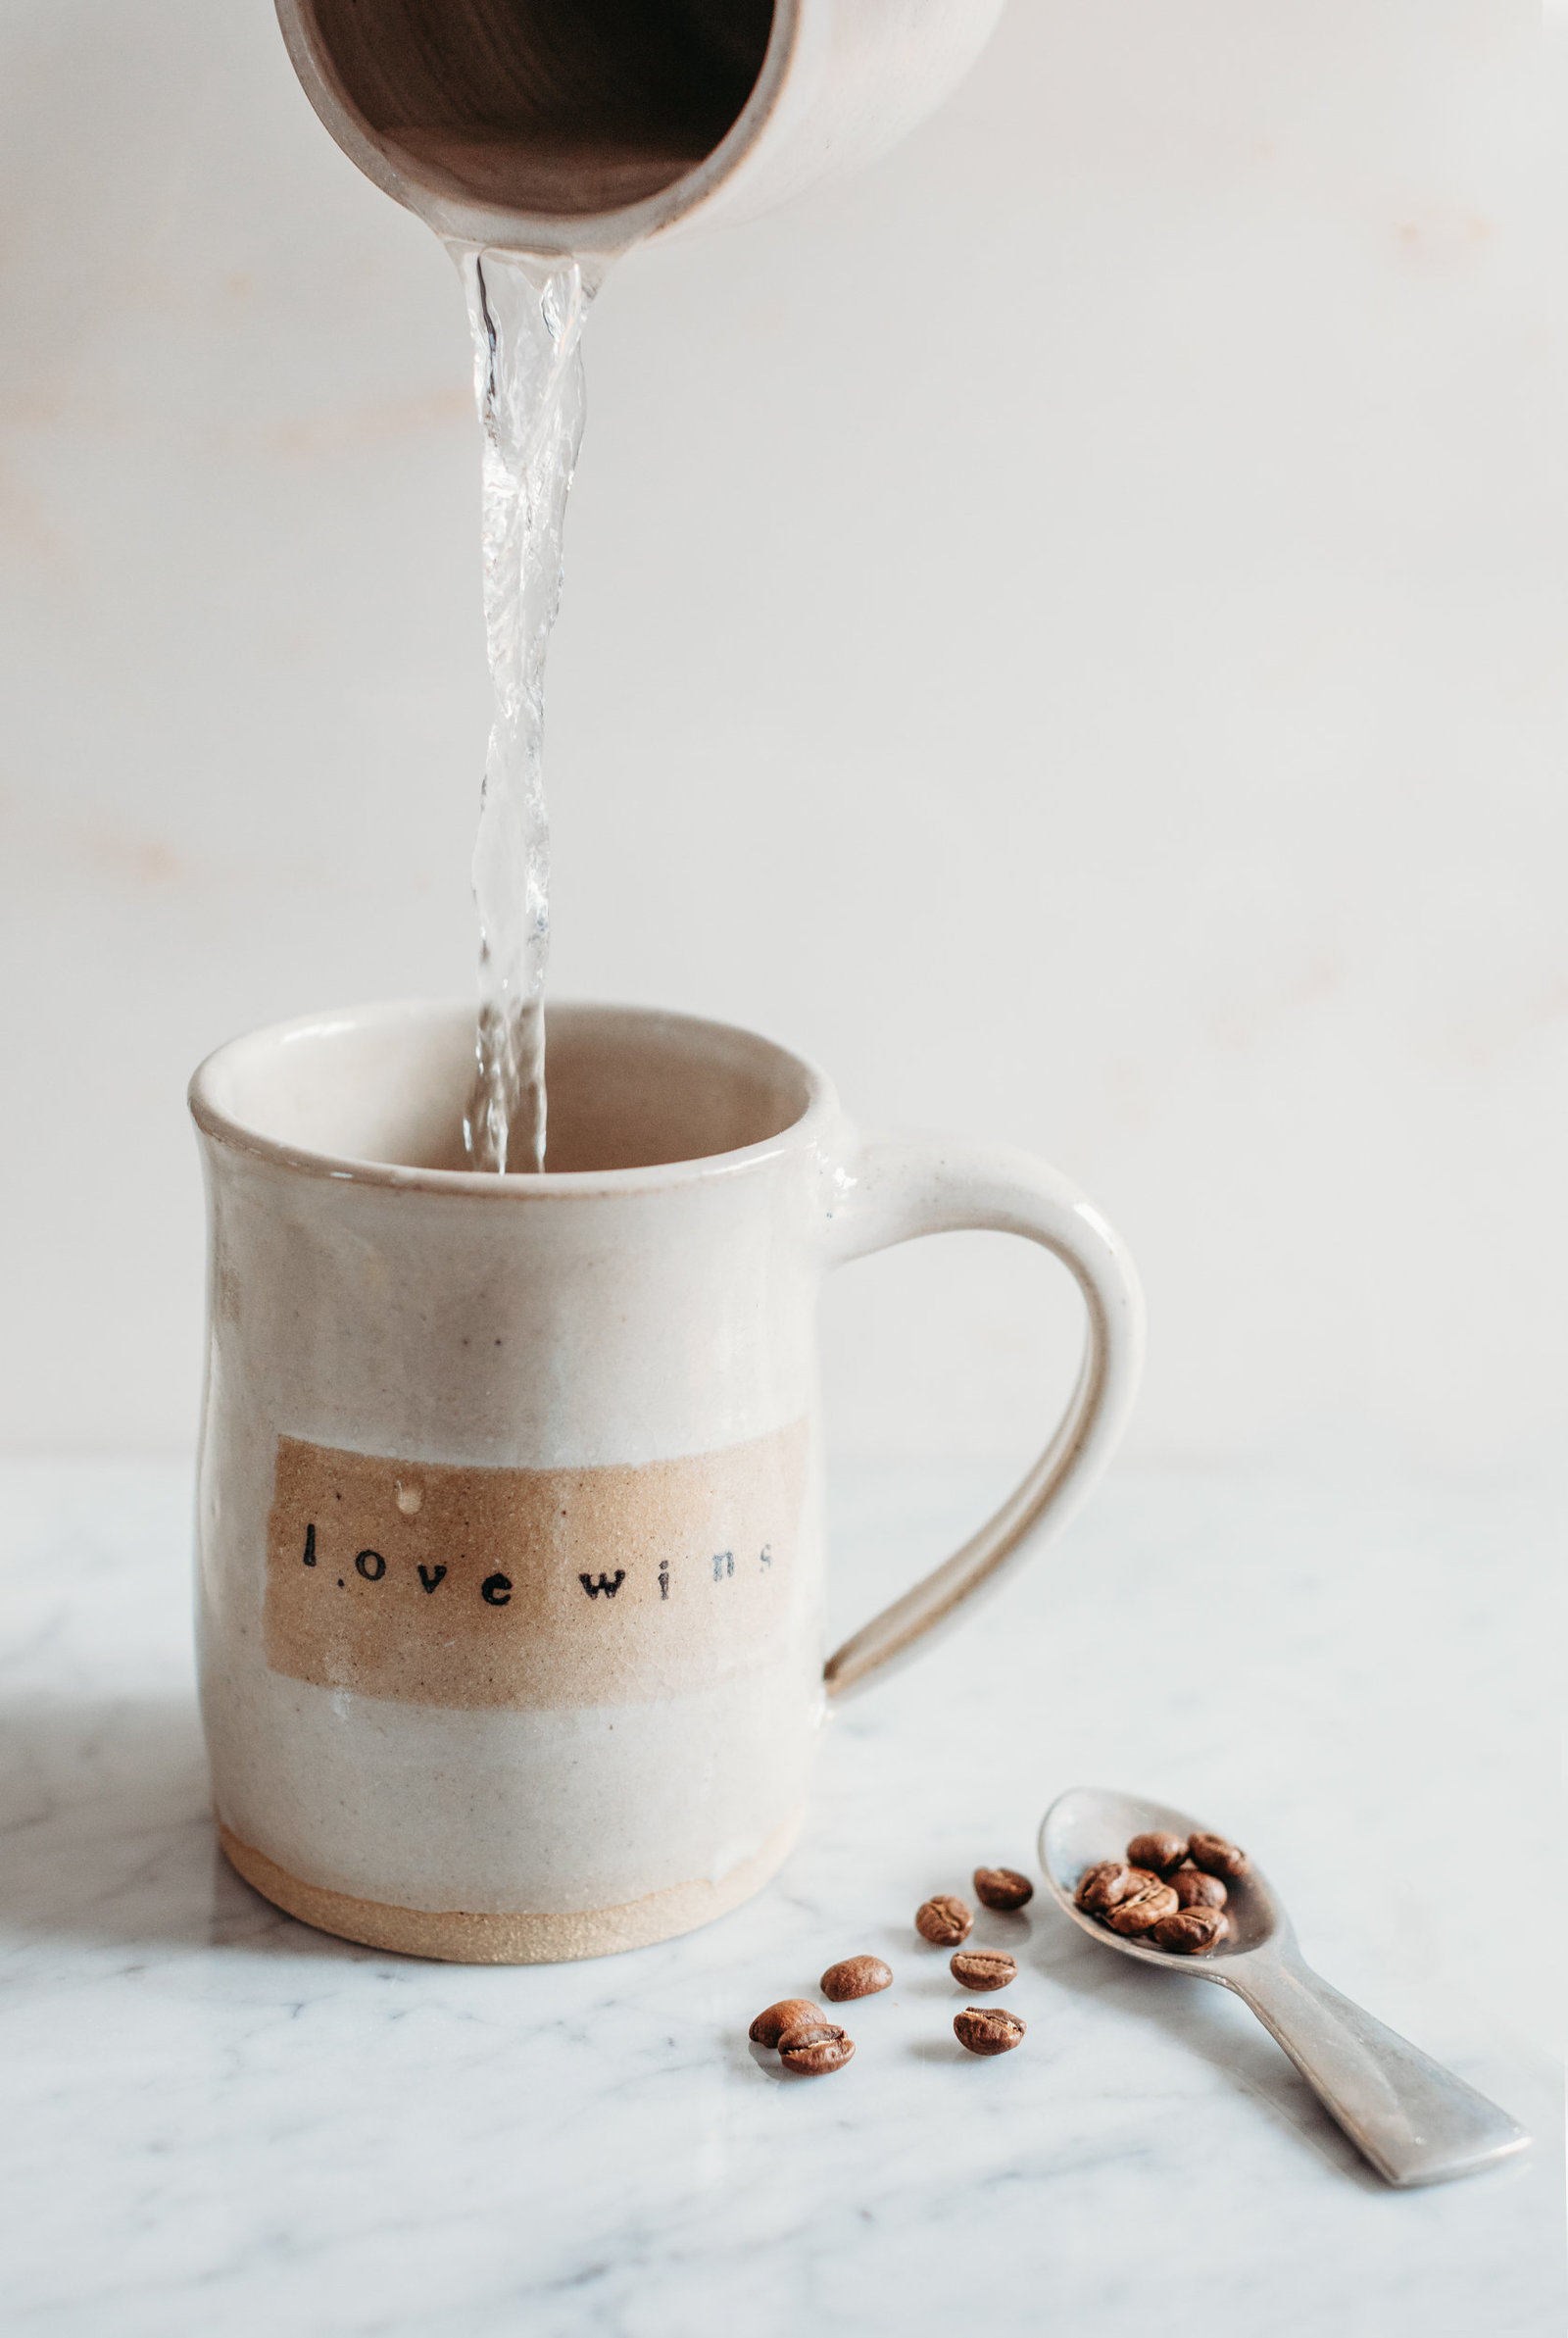 product shot of a tan coffee mug and coffee beans